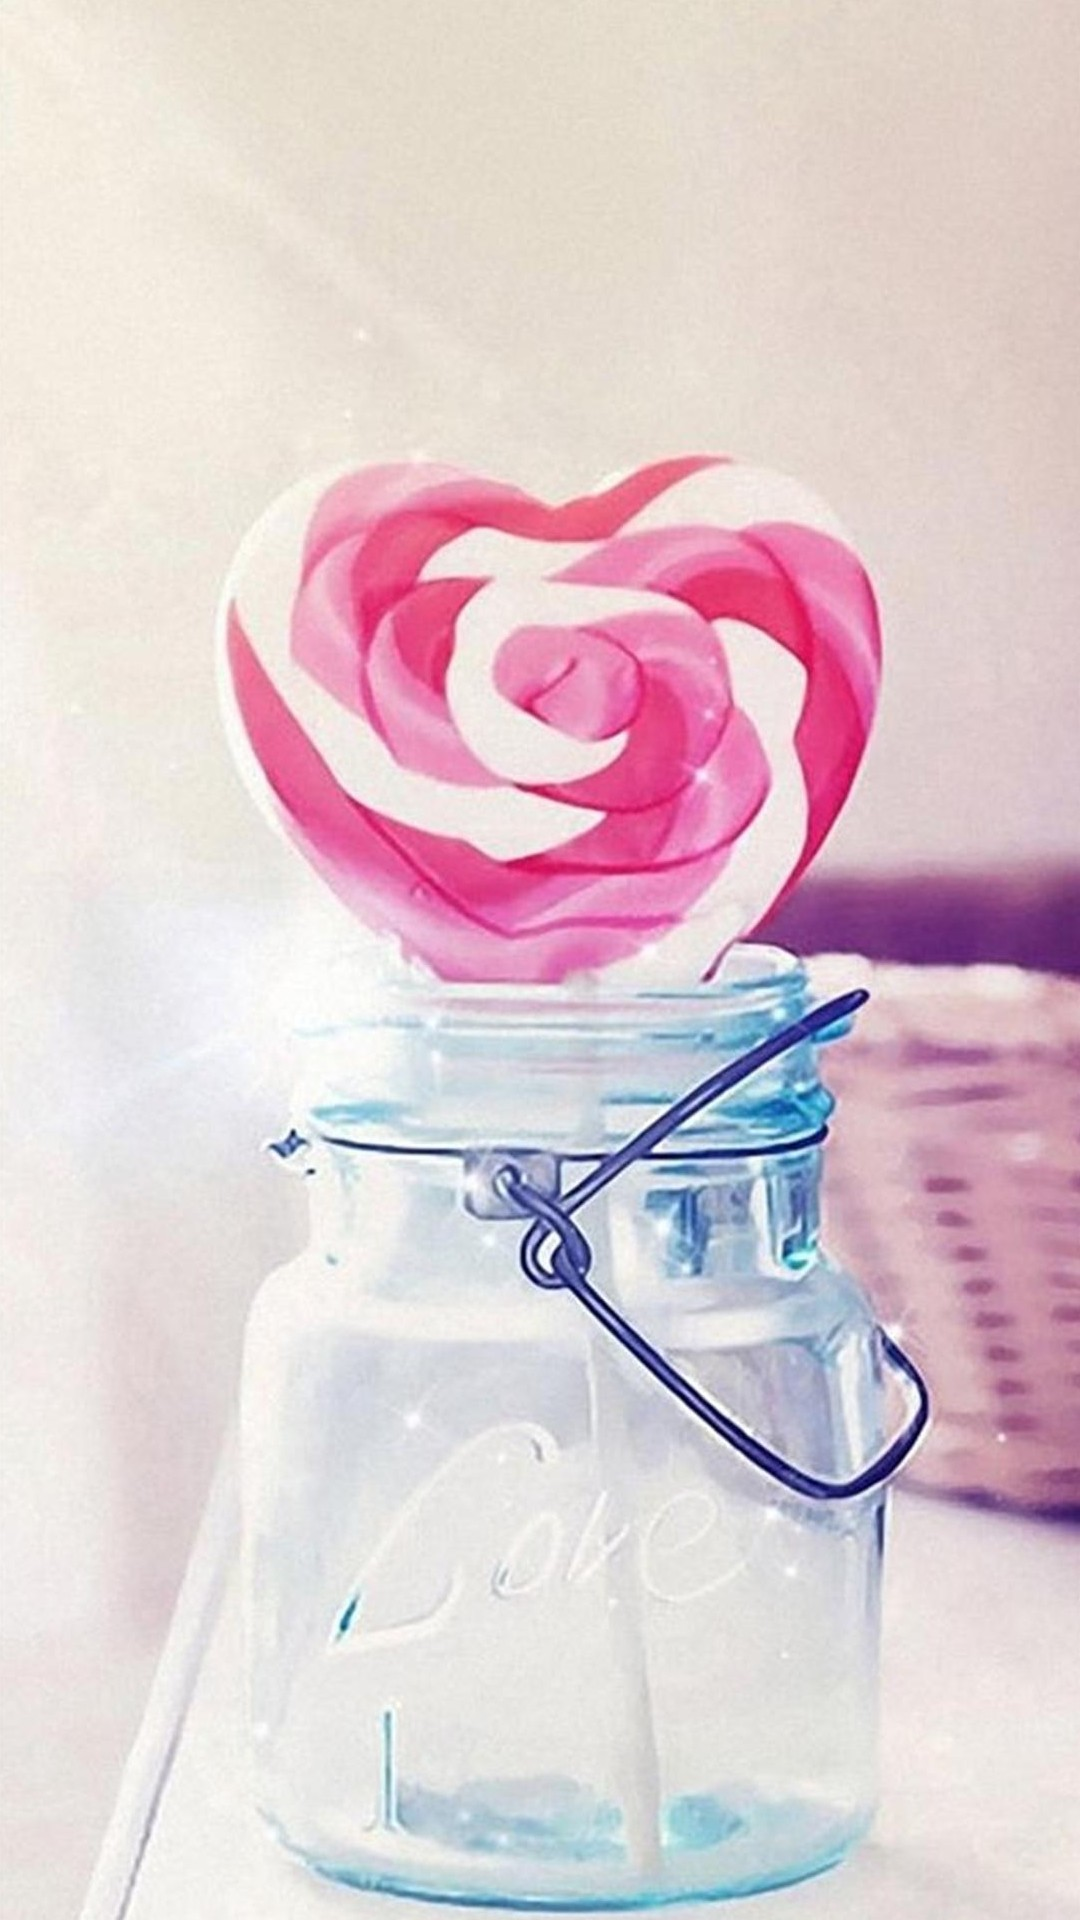 1080x1920 Heart Candy Cane Glass Jar Valentines Gift Android Wallpaper ...